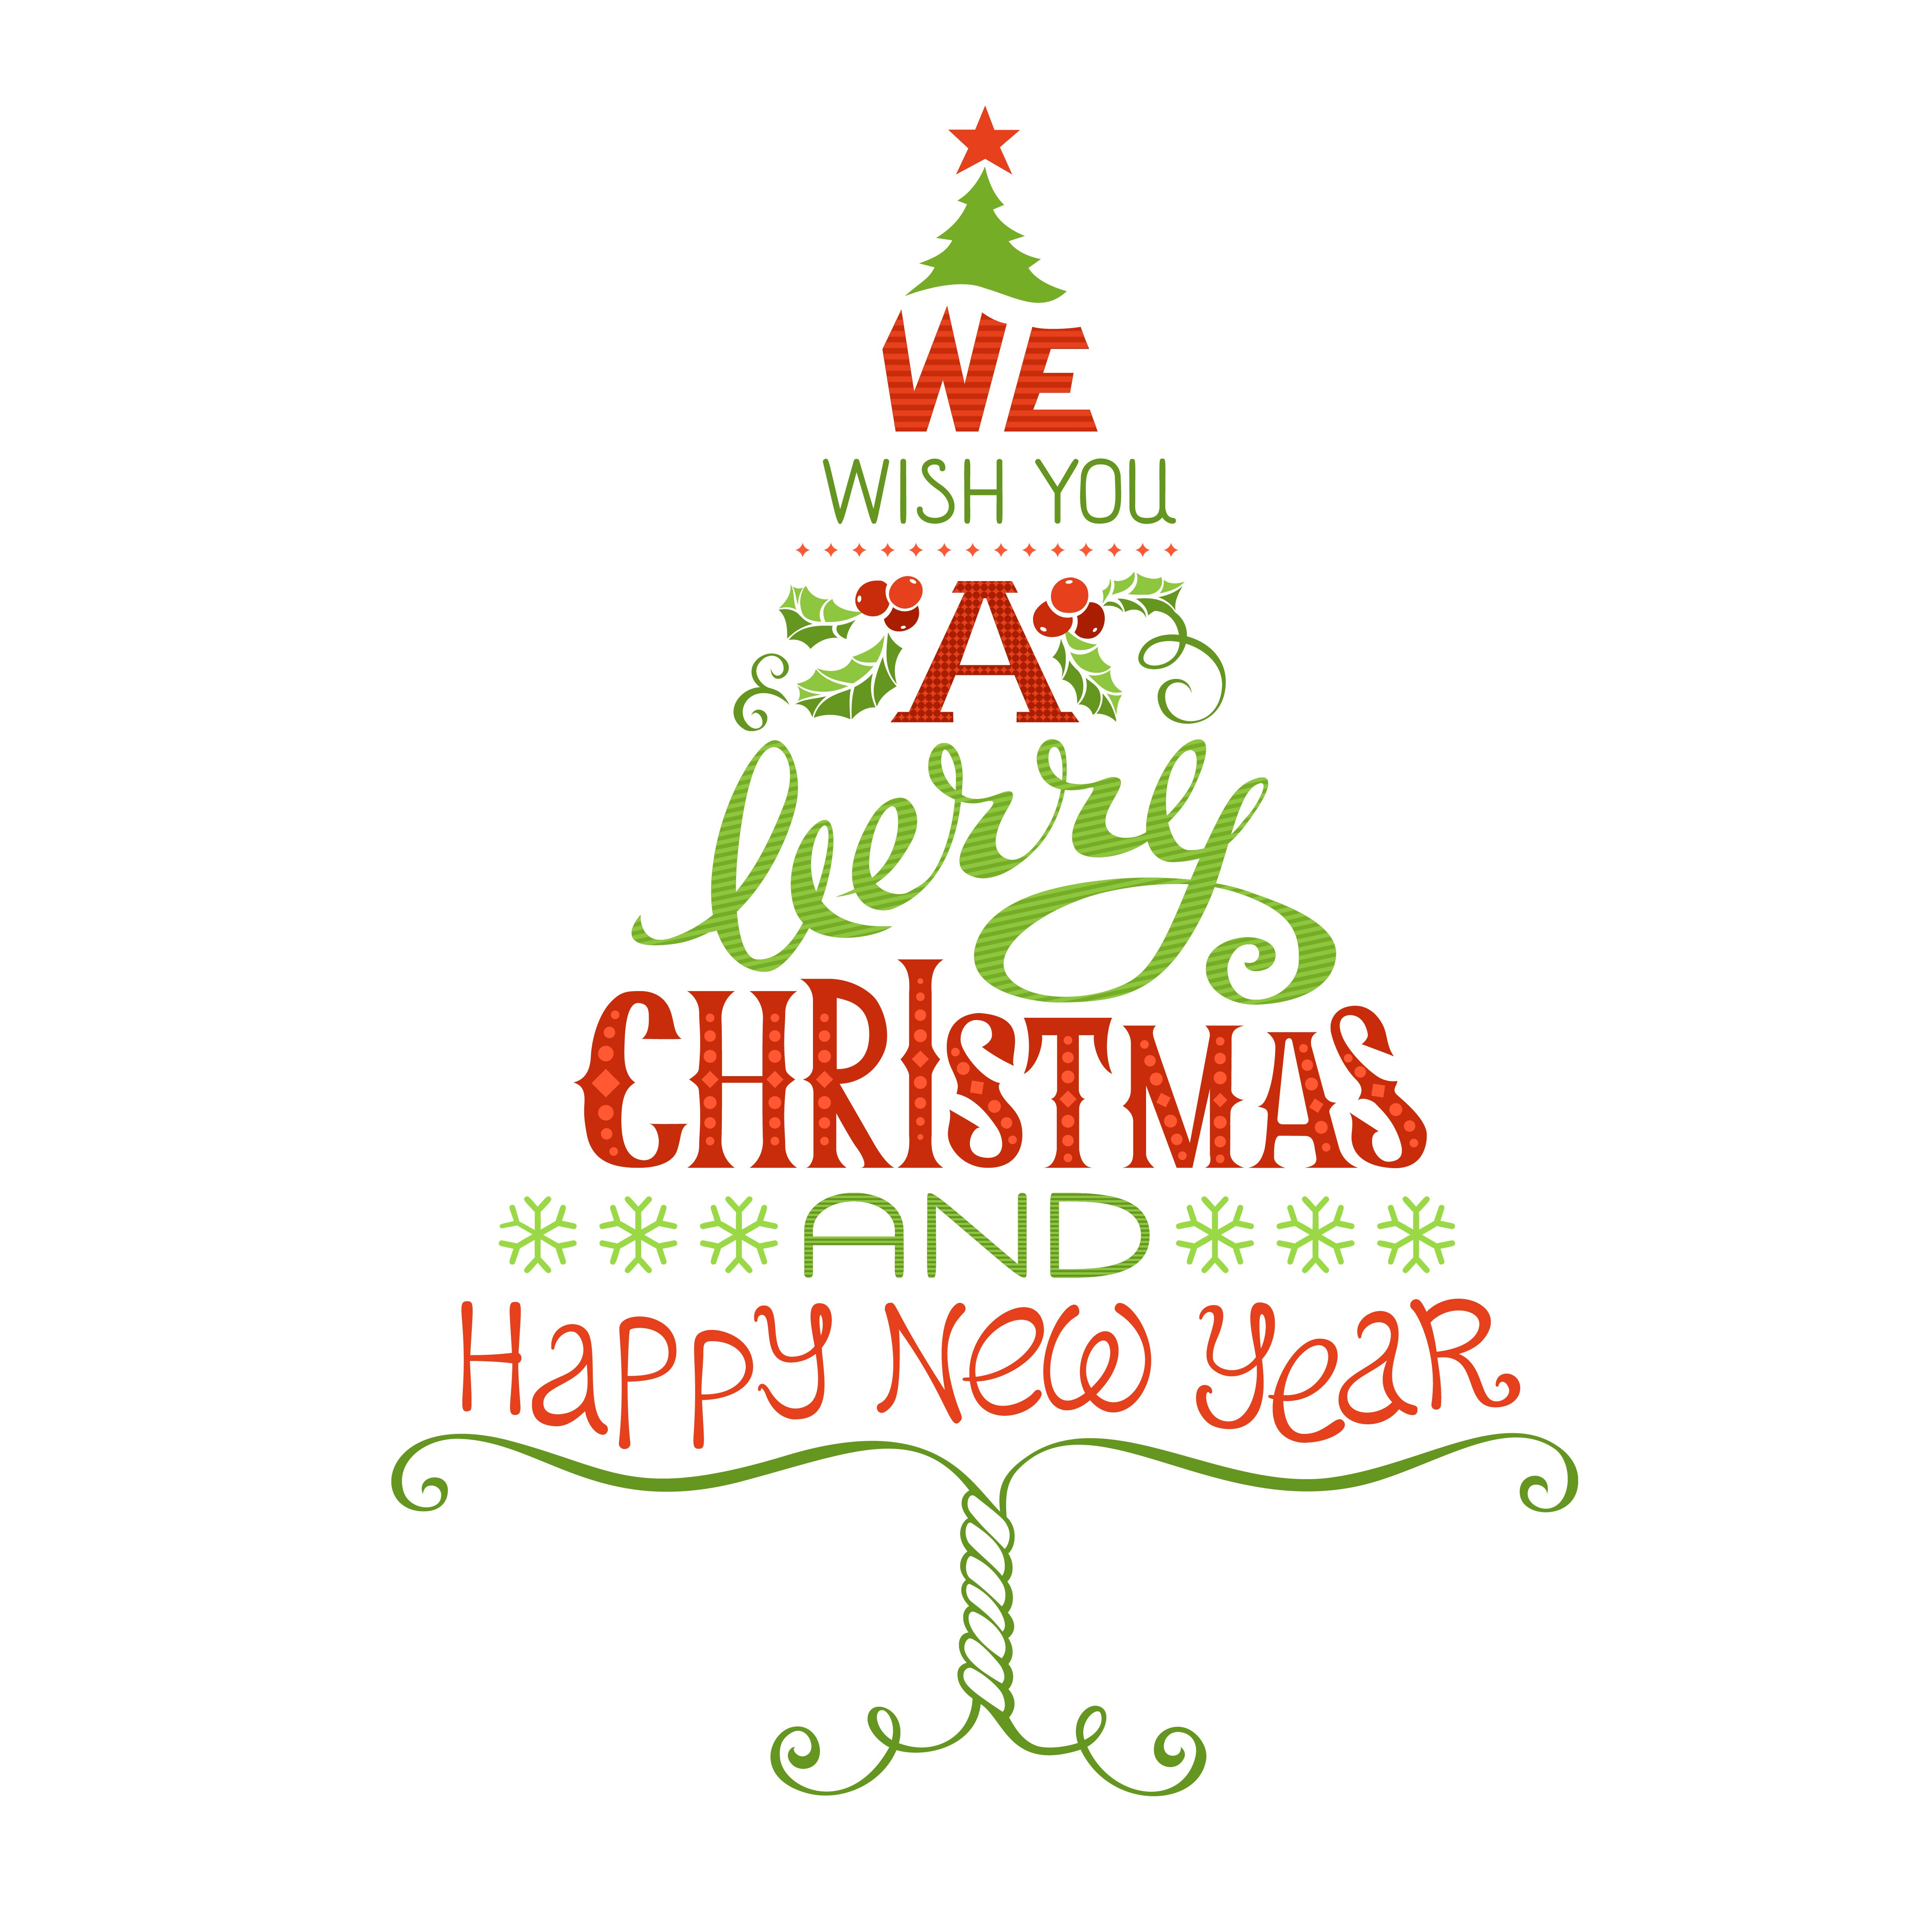 Merry Christmas And Happy New Year Merry Christmas Wishes Merry Christmas Everyone Cross Stitch Tree